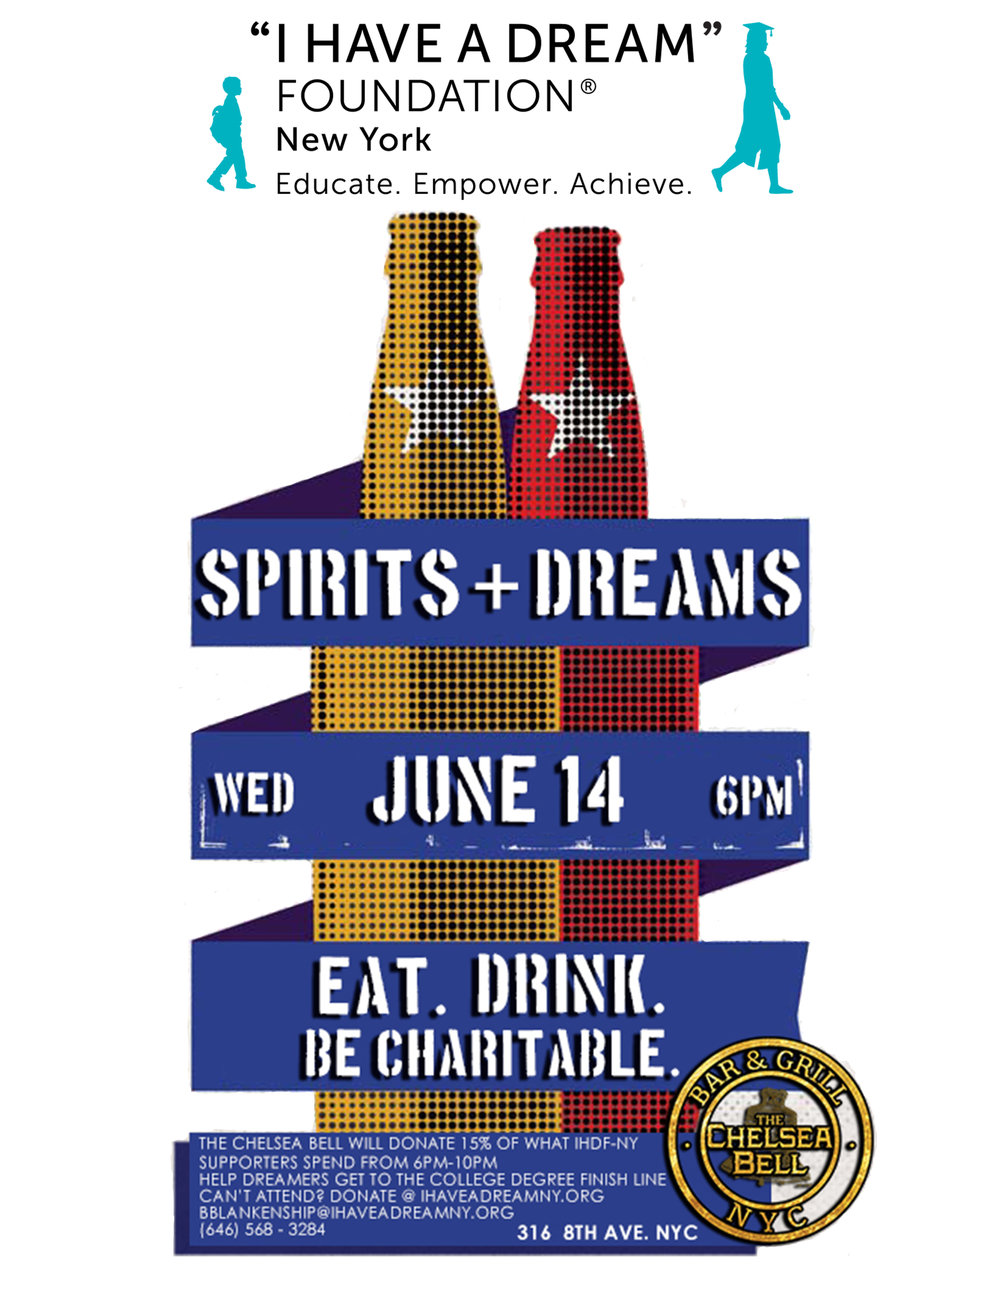 Wednesday June 15, 2017. 6PM-10PM Spirits + Dreams Eat, Drink, and be Charitable! ___________________________ Full Menu: http://thechelseabell.com/menu/ The Chelsea Bell Bar & Grill will donate 15% of everything that IHDF-NY supporters spend between the hours of 6PM-10PM on So come out for some upscale pub fare, specialty cocktails, your choice of 100 beers, and help Dreamers get to the college degree finish line! Can't make it? Visit ihaveadreamny.org and click donate to support the Dream or contact Bonnie Blankenship bblankenship@ihaveadreamny.org (646) 568-3284 SEE YOU AT THE CHELSEA BELL!!!